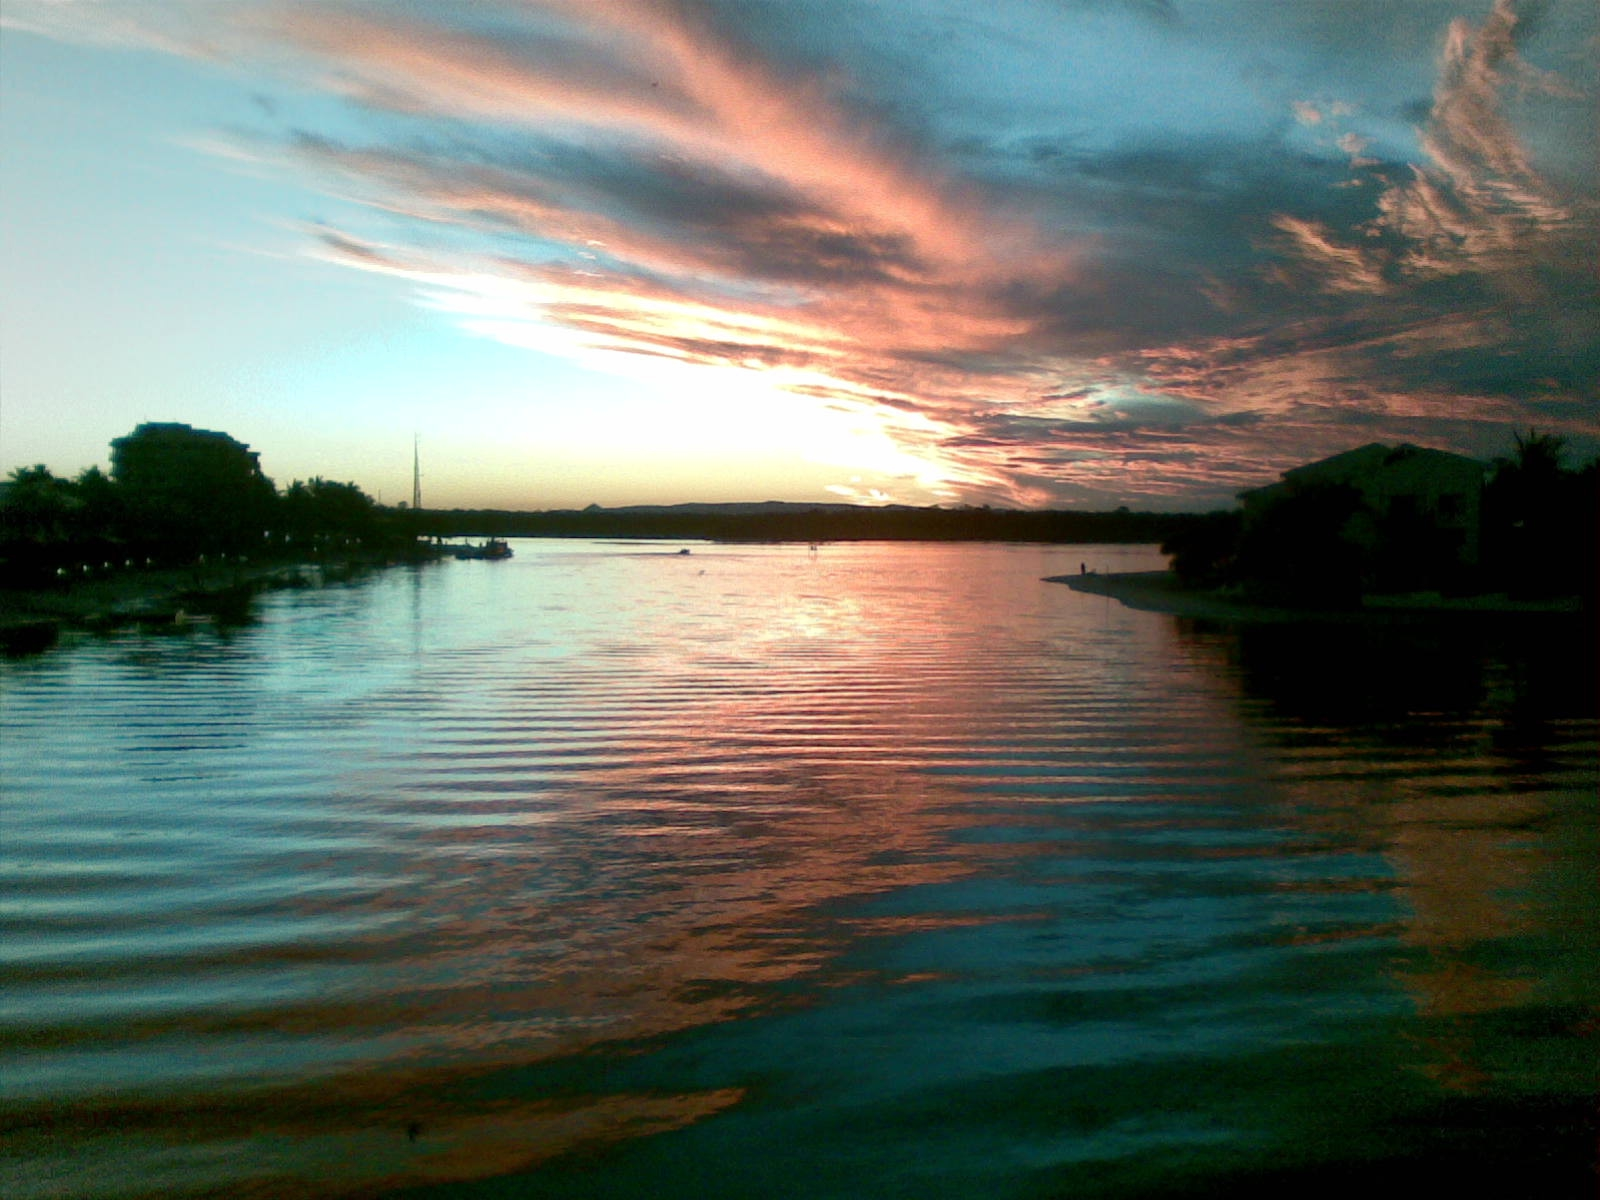 There's nothing like enjoying sunset on a Noosa River ...